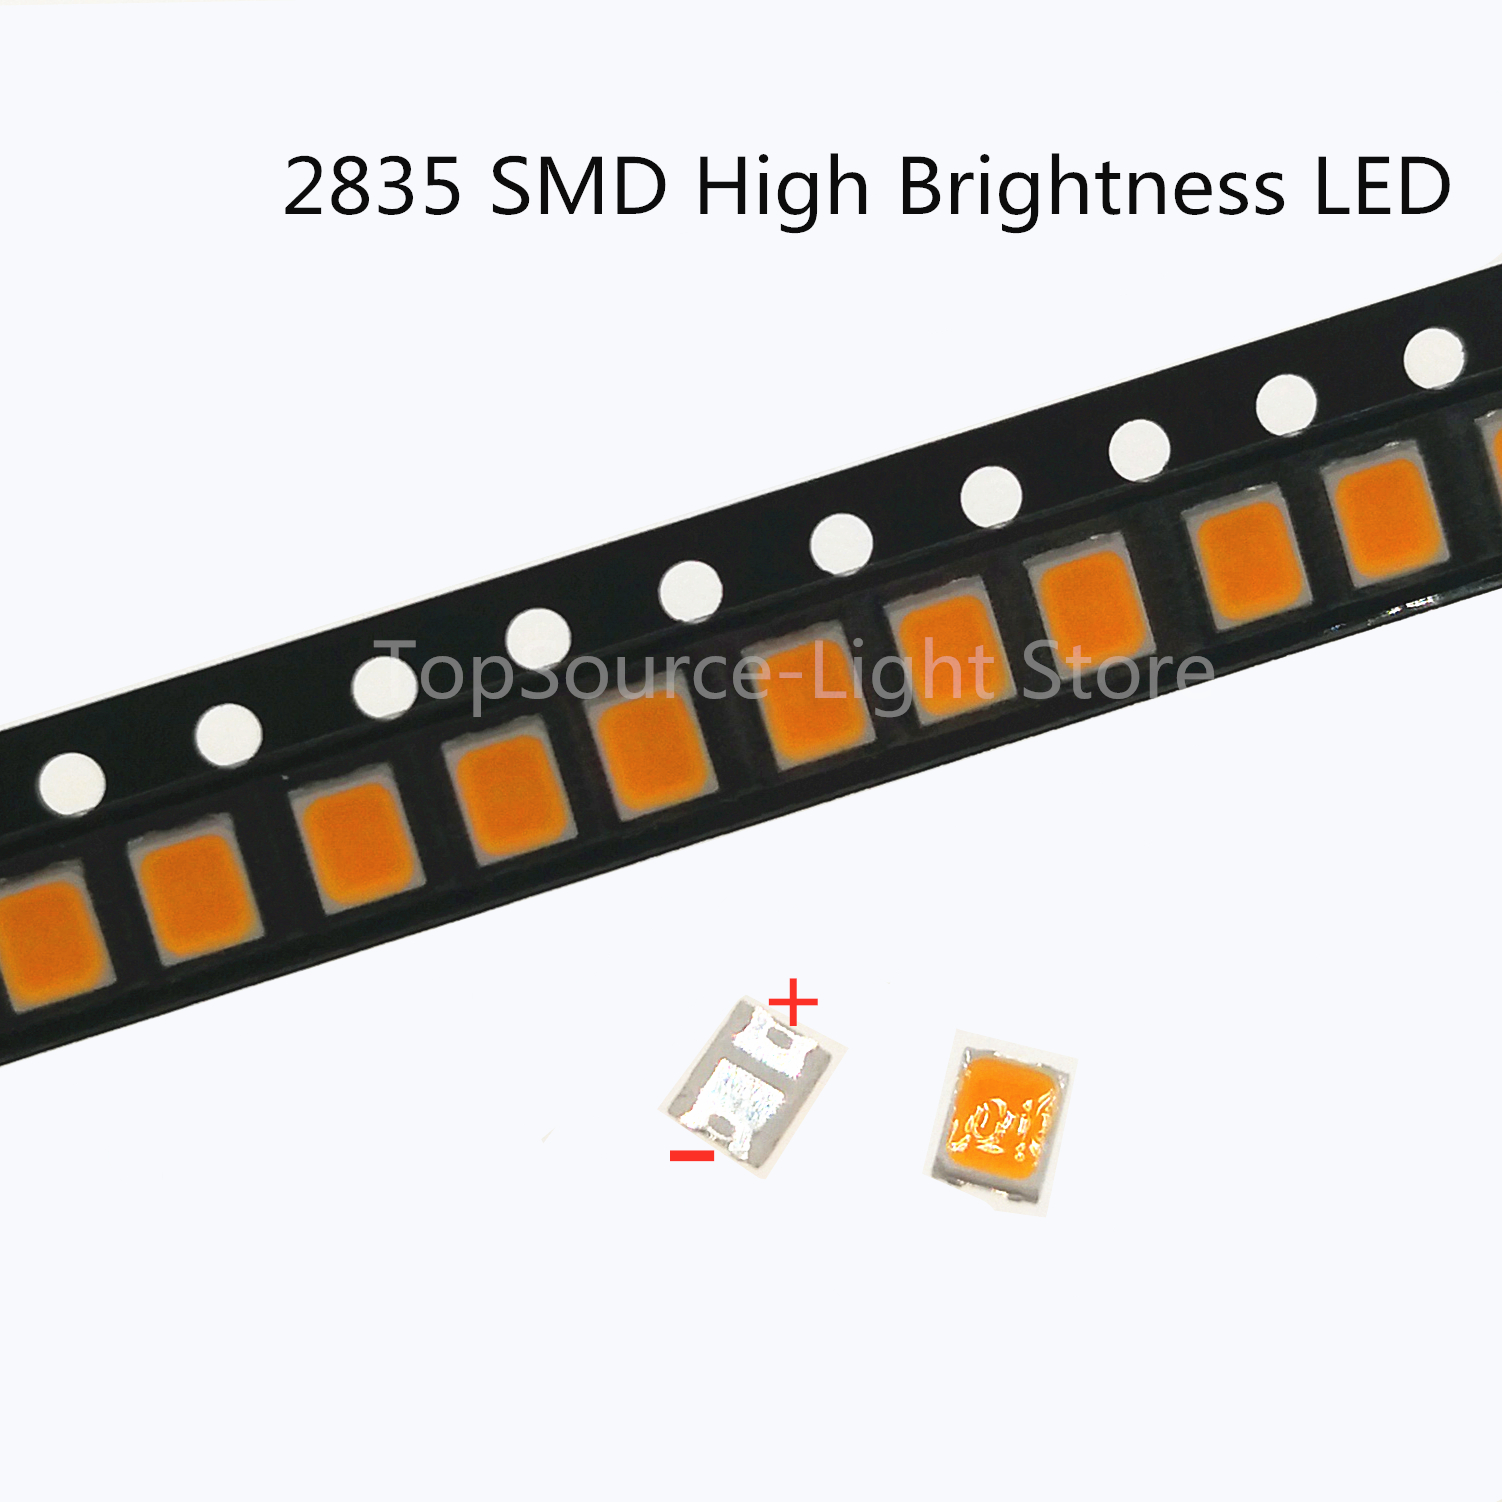 50Pcs High Brightness <font><b>2835</b></font> SMD <font><b>LED</b></font> Chip <font><b>1W</b></font> 18V 9V 6V <font><b>3V</b></font> 36V Warm Nature Cold White <font><b>LED</b></font> 3000K-9500K Light Emitting Diode Lamp image